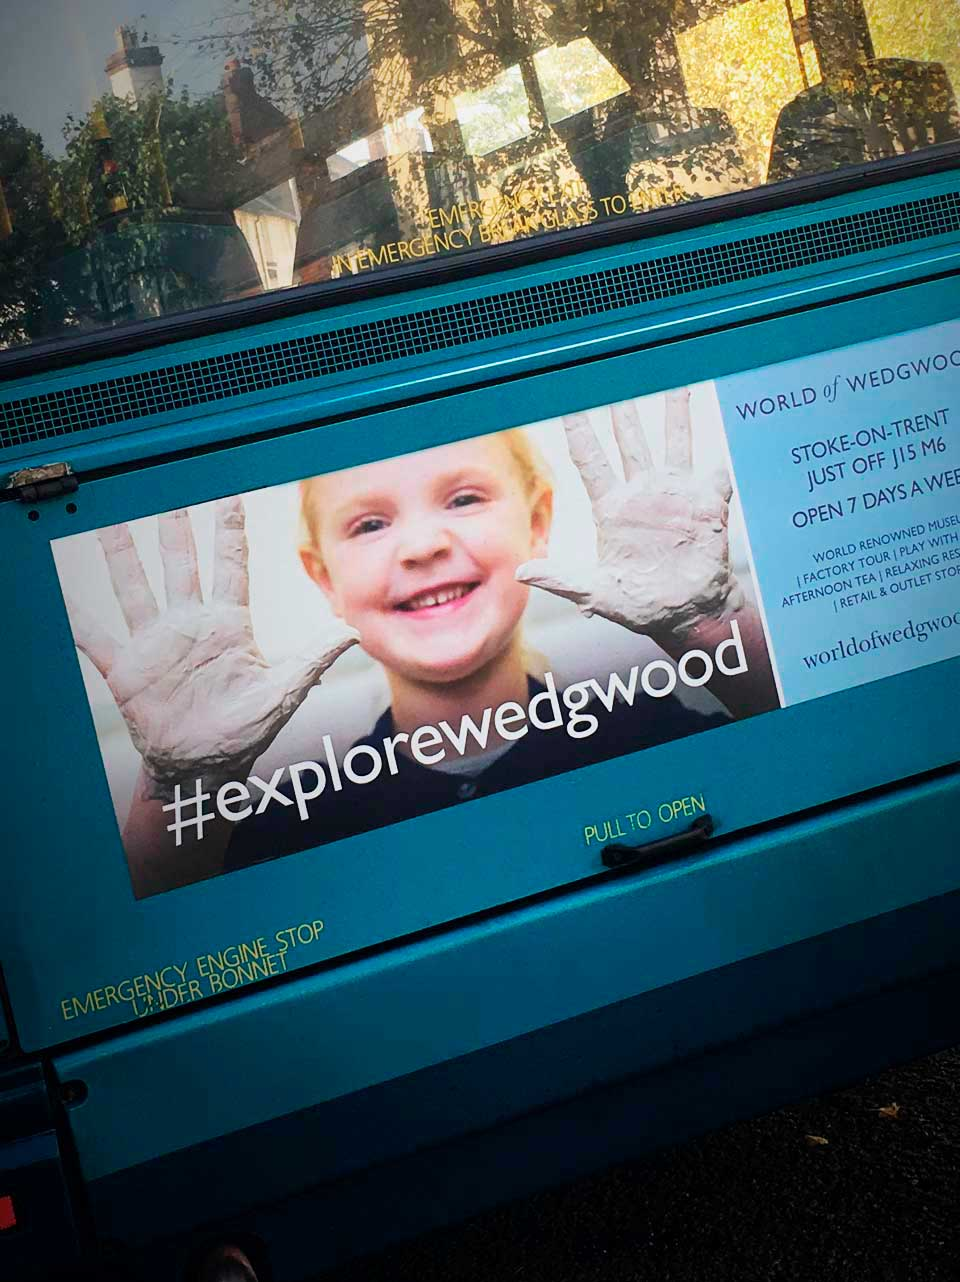 Bus Advertising for World of Wedgwood